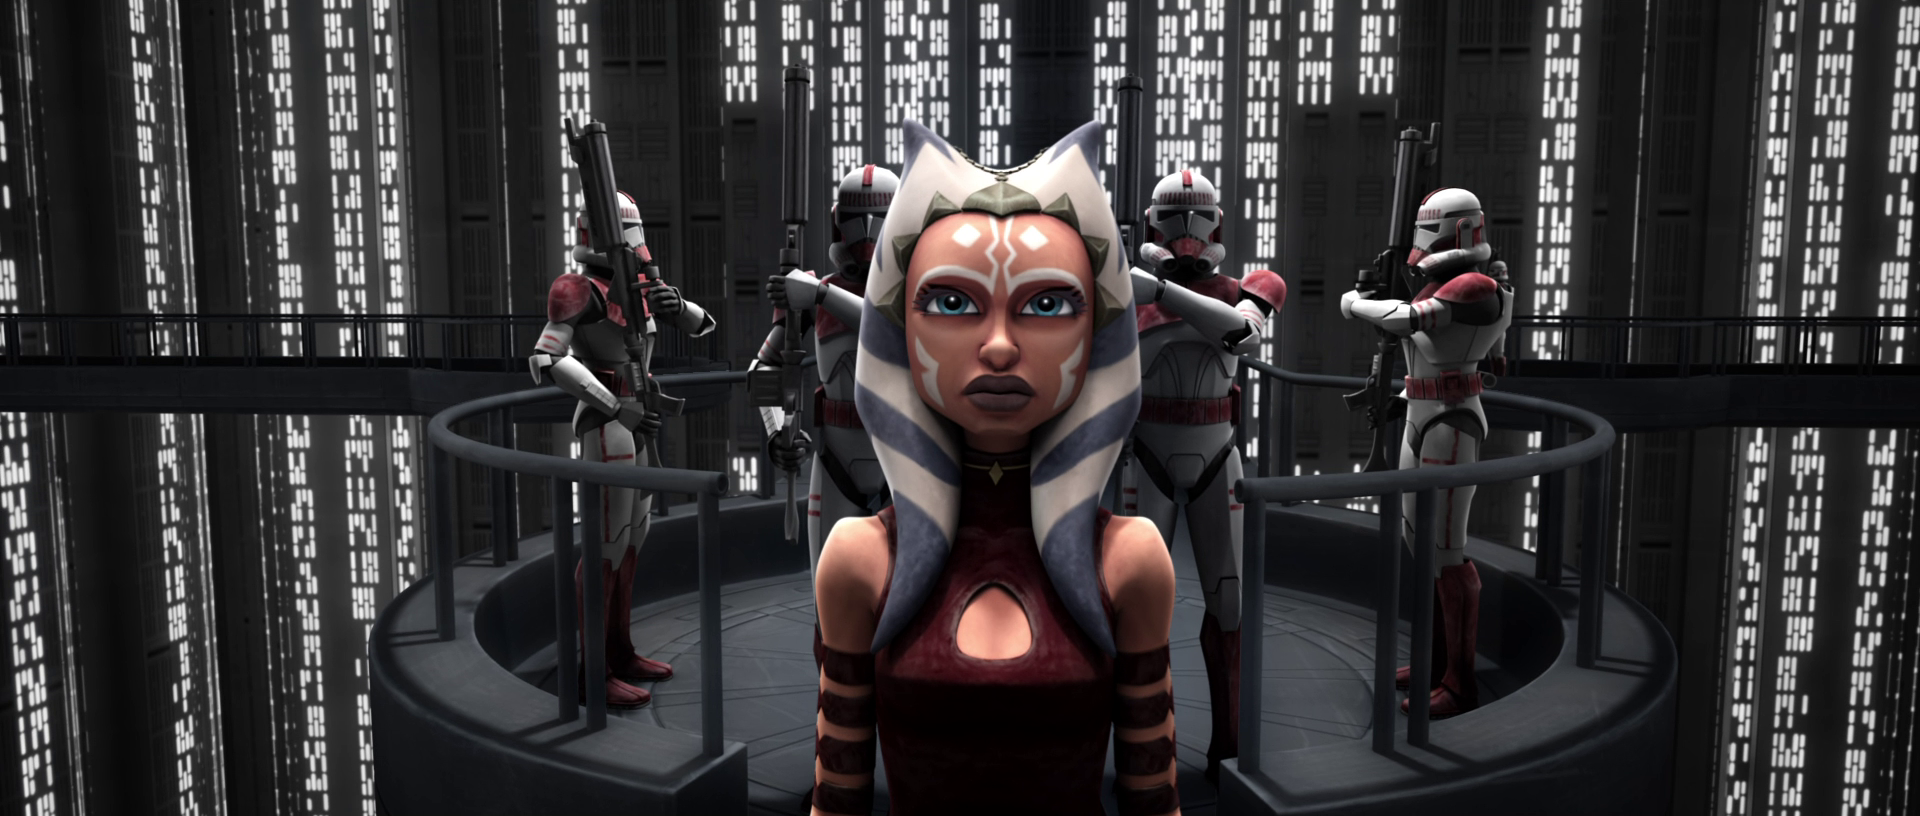 Trial of Ahsoka Tano | Wookieepedia | FANDOM powered by Wikia